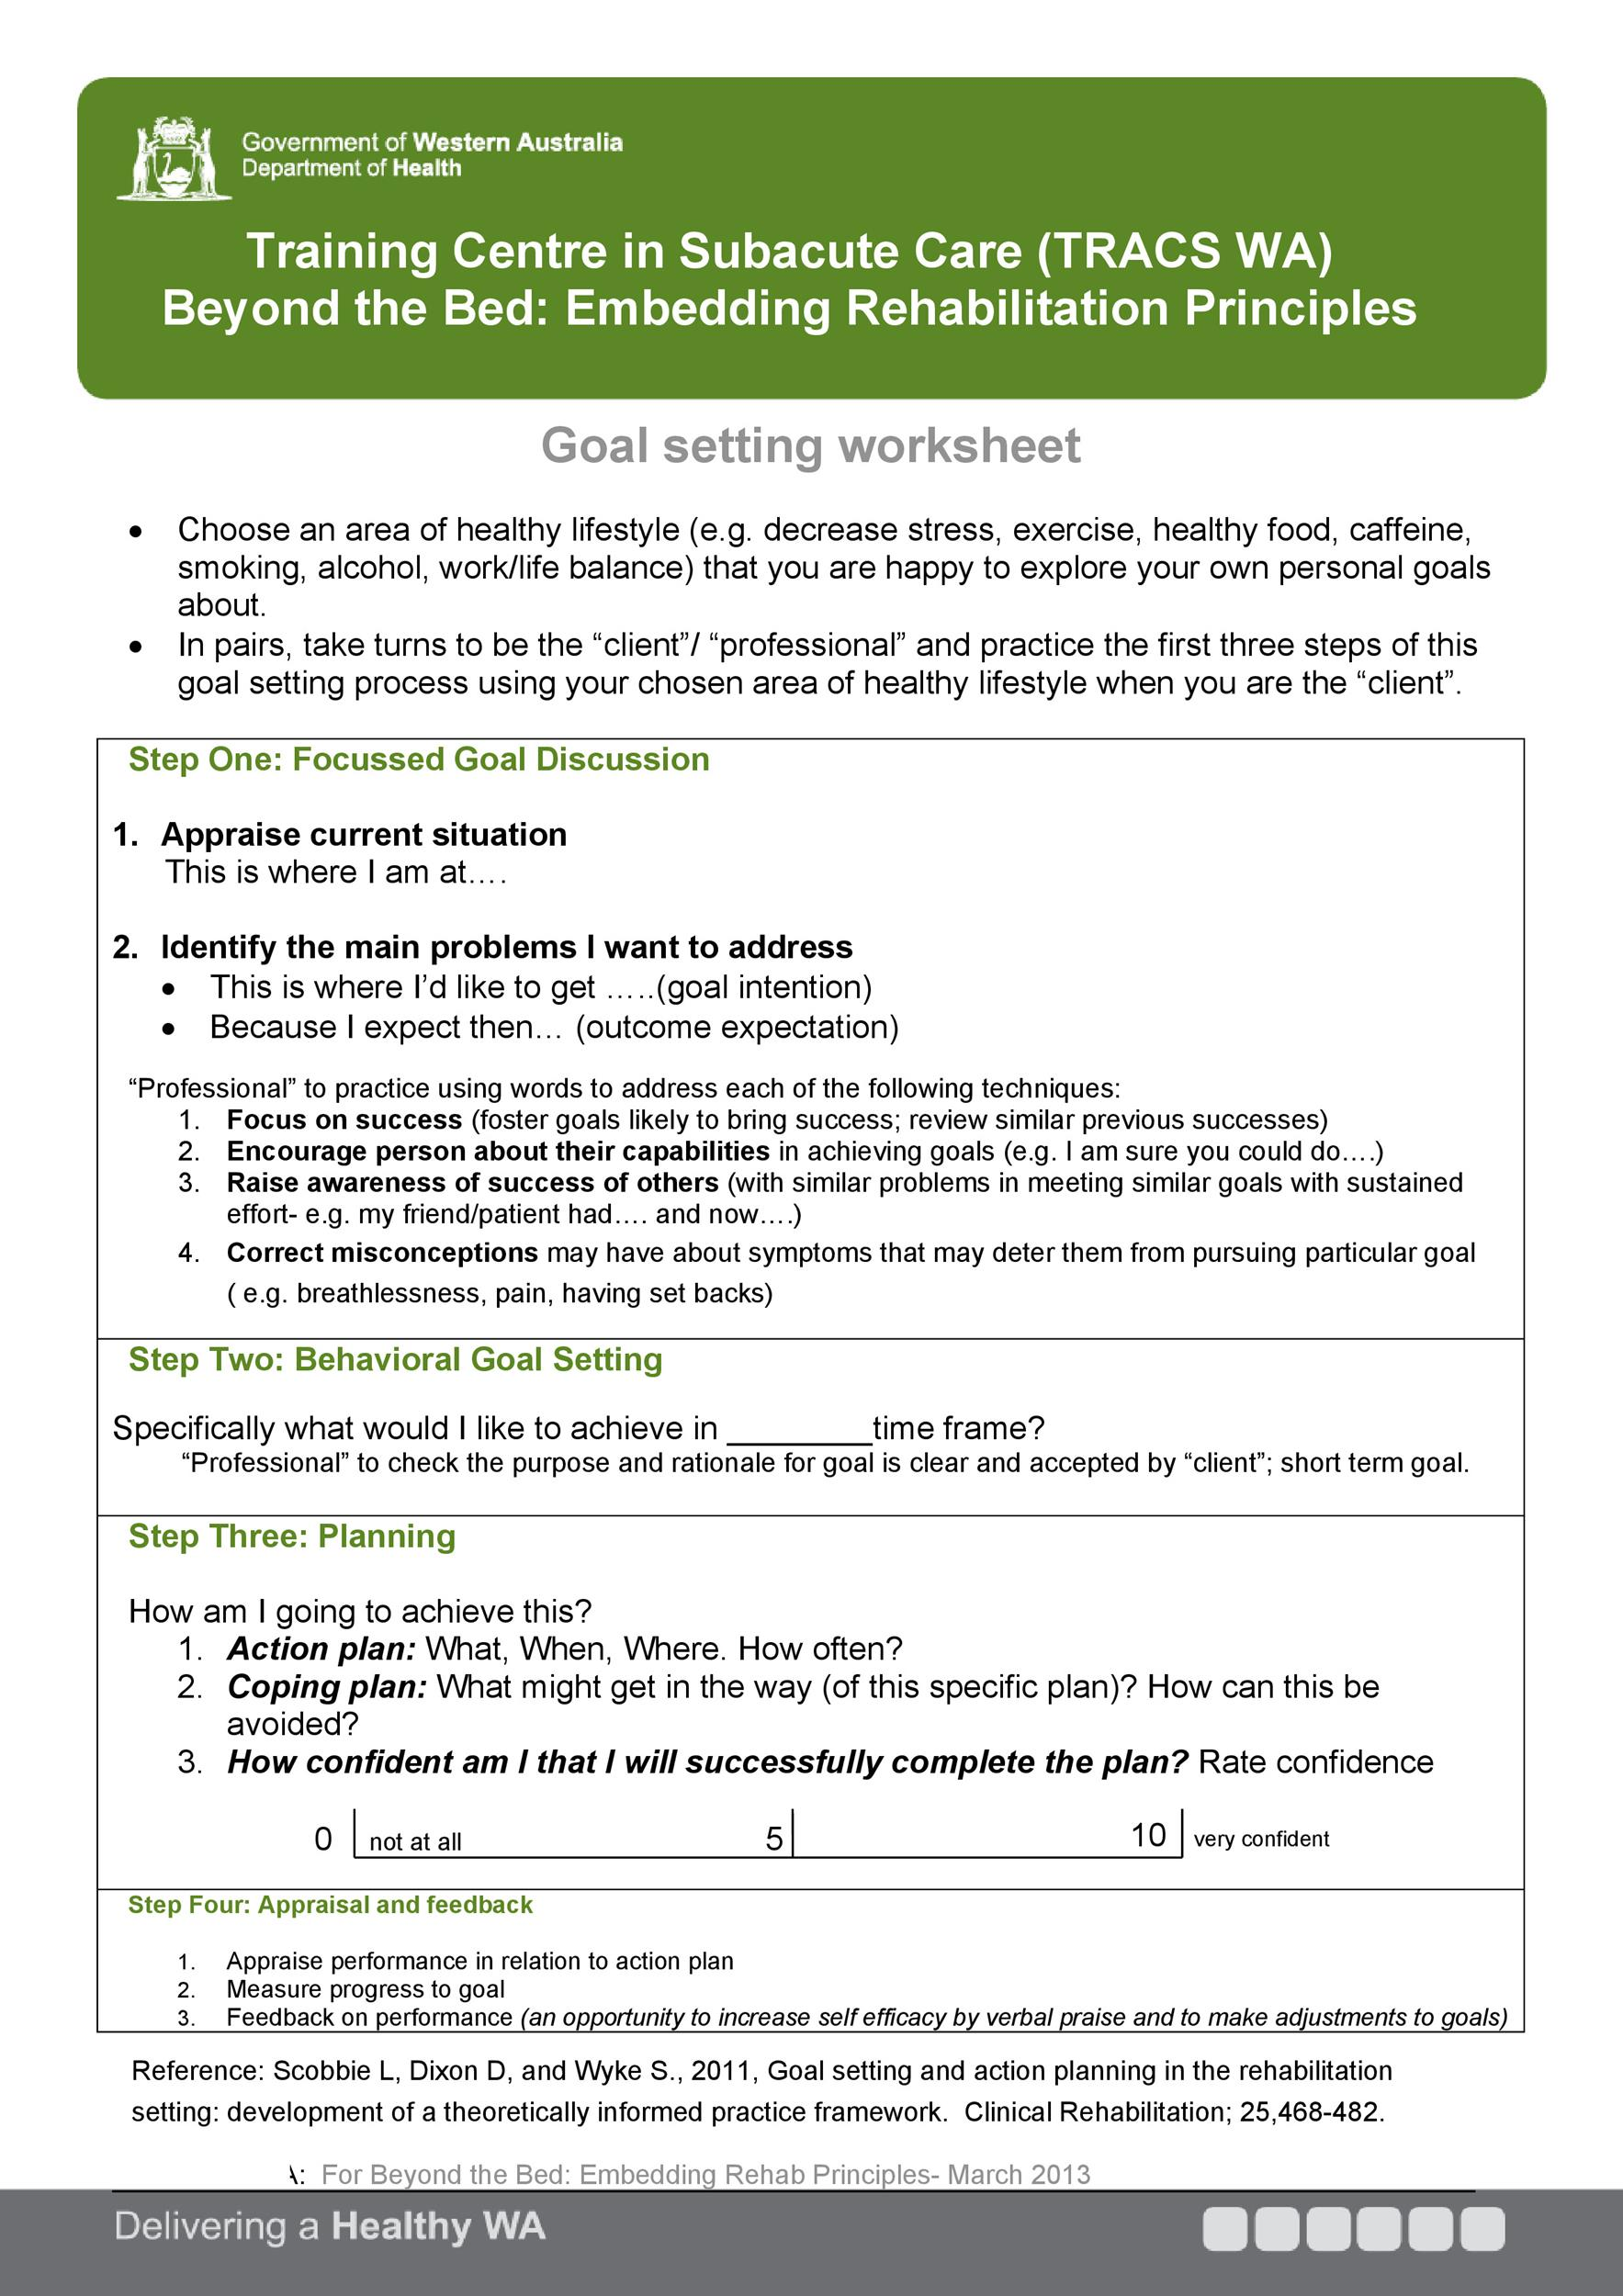 41 S.M.A.R.T Goal Setting Templates & Worksheets - Template Lab